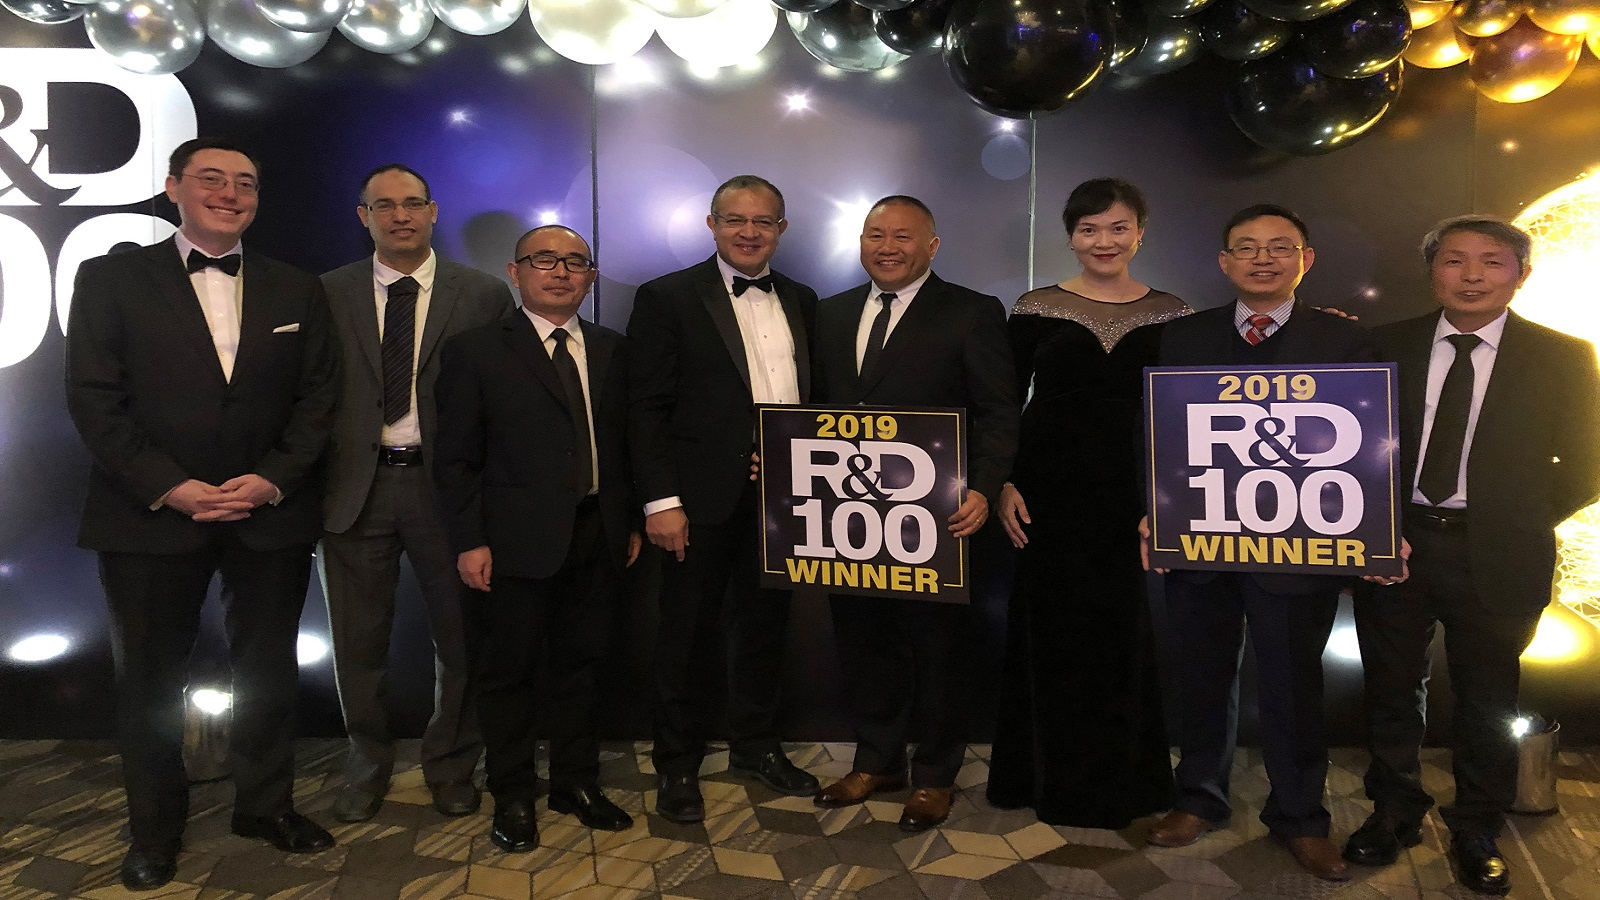 2019 R&D 100 Awards - Left to right: Bryan Yonemoto (Microvast), Ali Abouimrane (former ANL ), Jun Lu (ANL) Khalil Amine (ANL),Yang Wu ( Microvast), Wenjuan Mattis (Microvast), Jinbo He (Microvast) and Zonghai Chen (ANL)